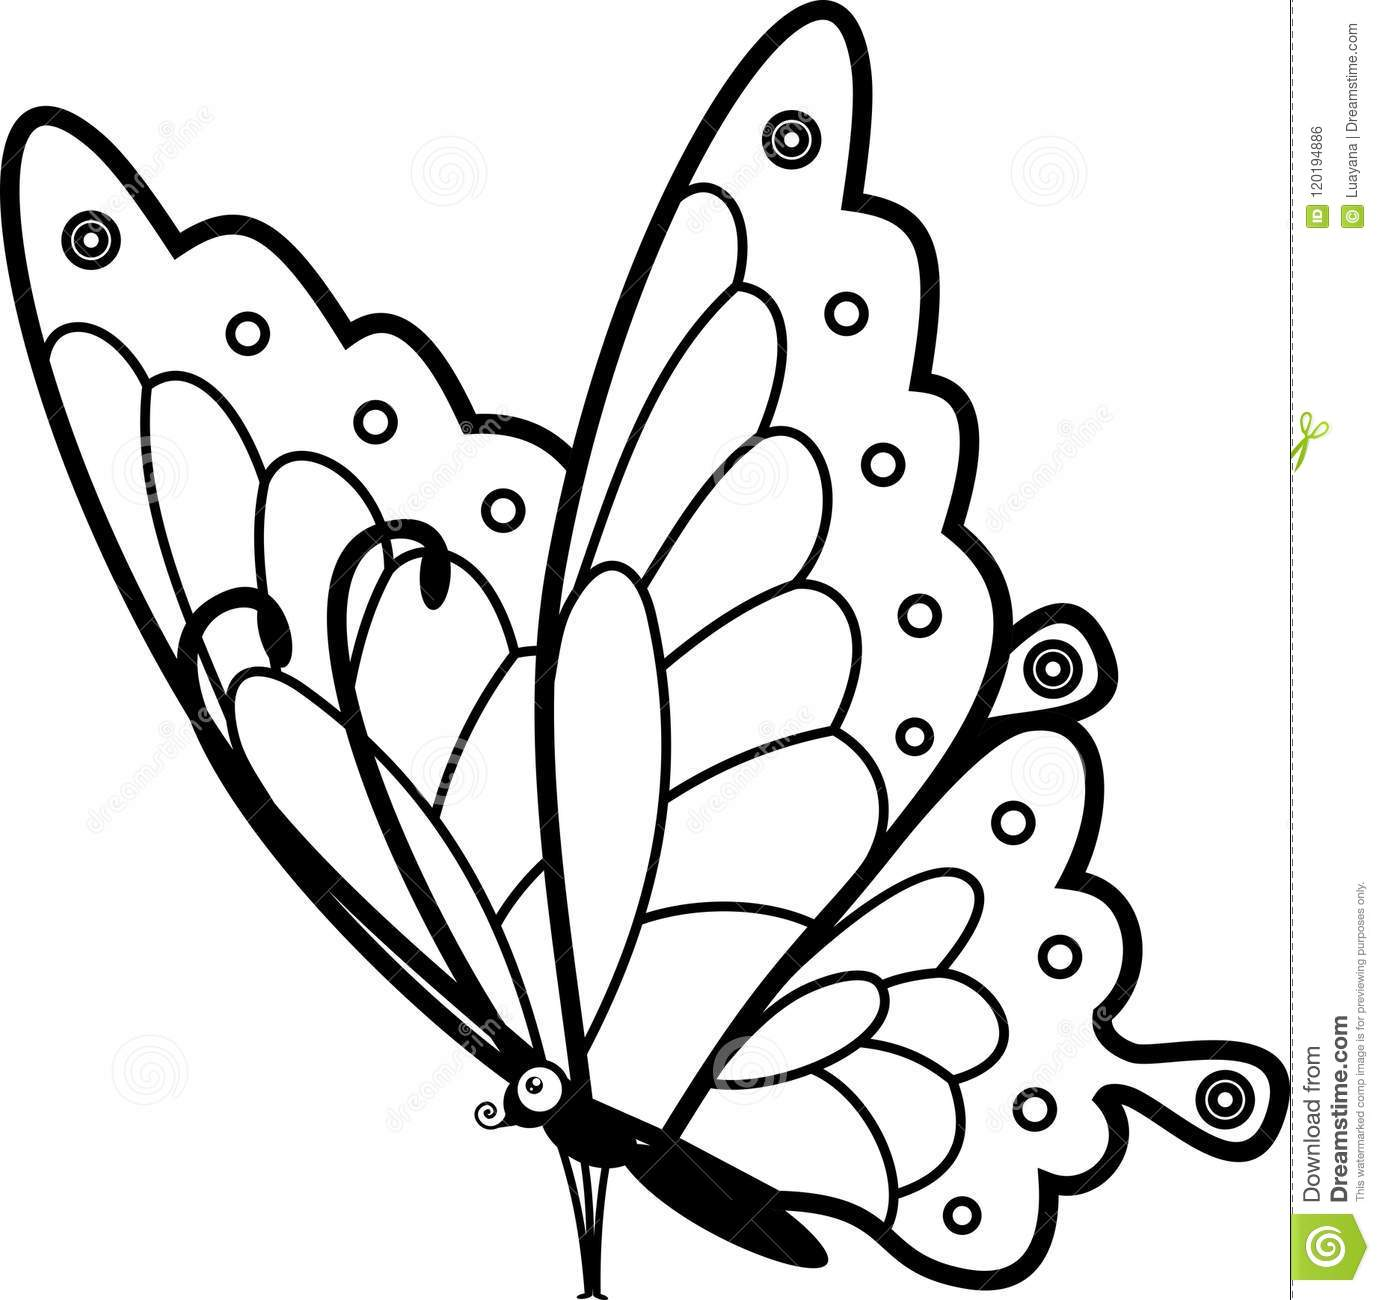 Sitting Butterfly Coloring Page Stock Vector Illustration Of Flat Background 120194886